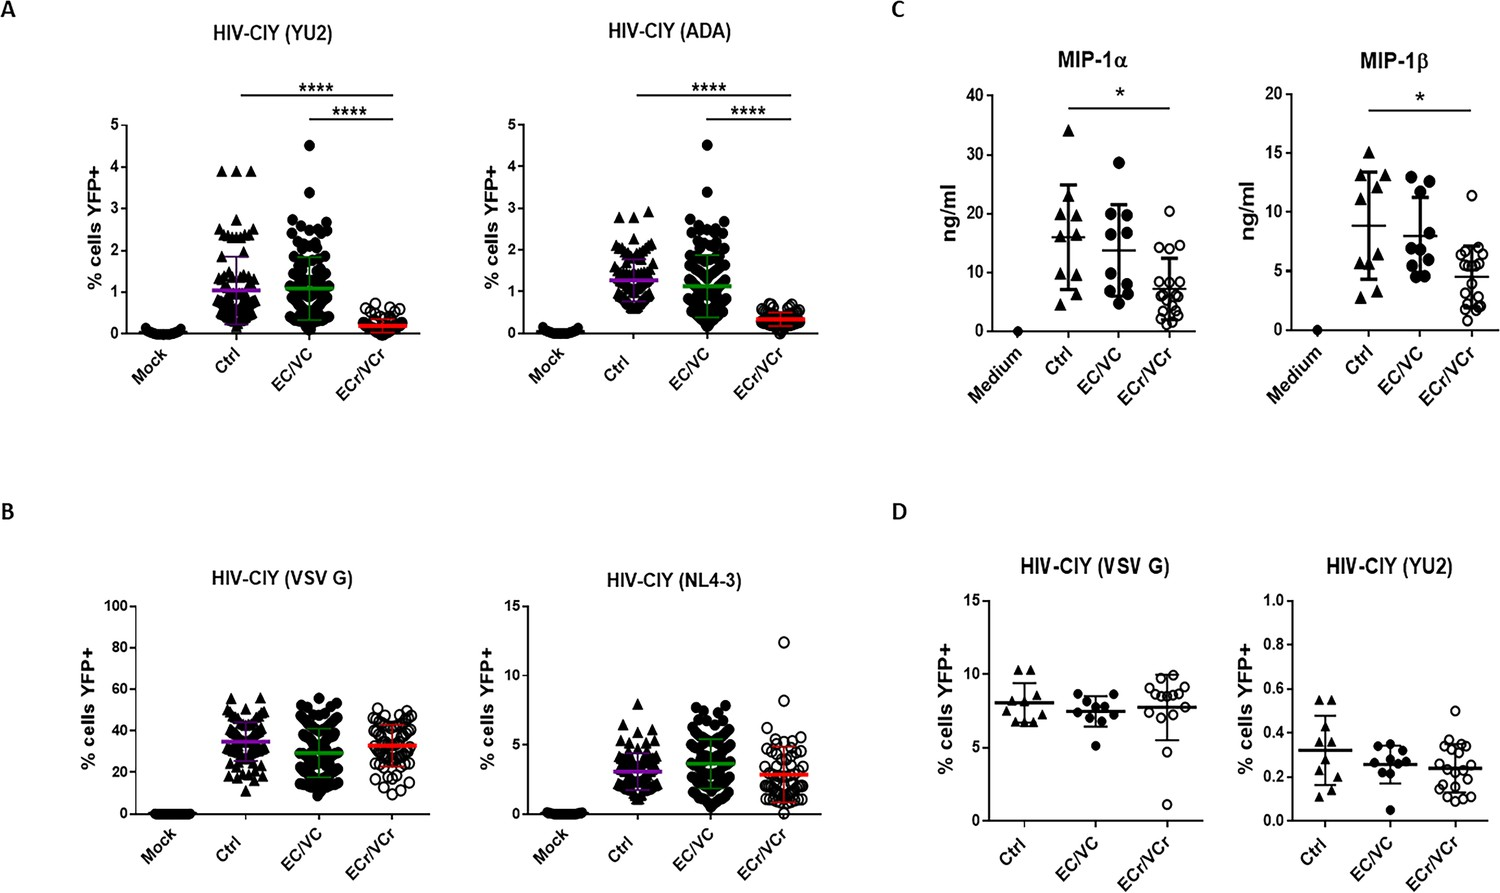 Transcriptional down-regulation of ccr5 in a subset of HIV+